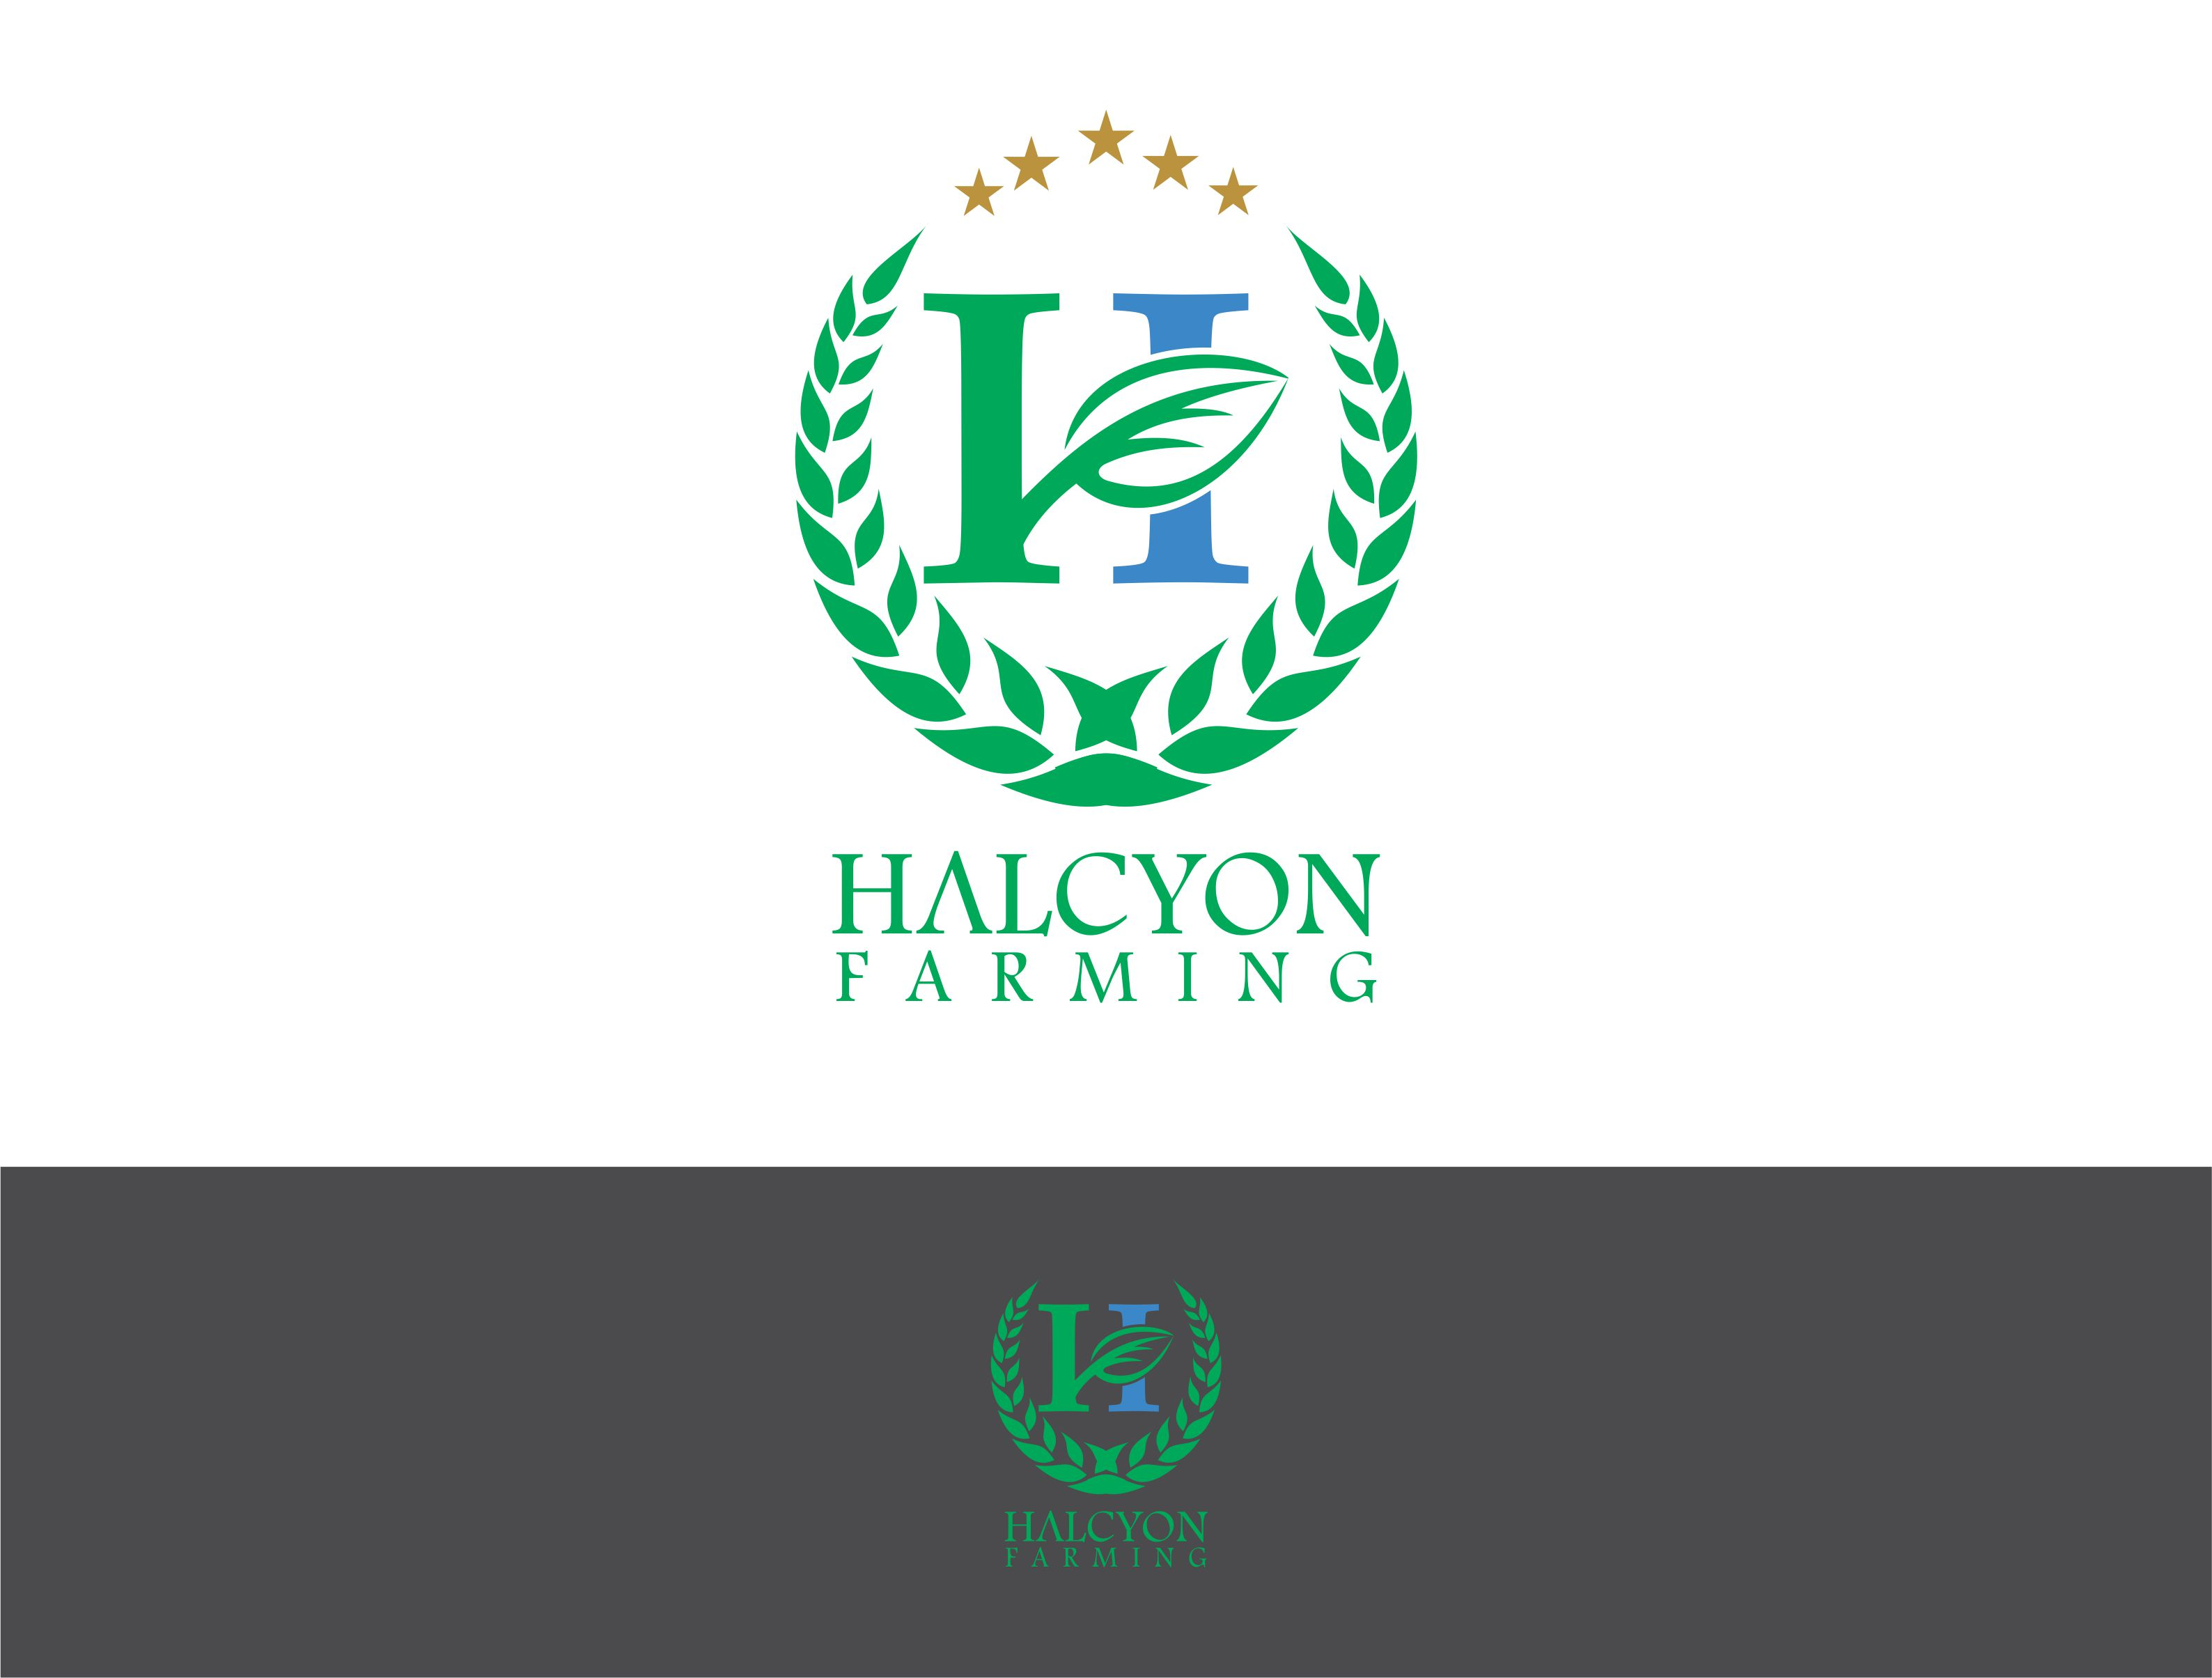 Logo Design by Dian Jatmiko - Entry No. 29 in the Logo Design Contest Creative Logo Design for Halcyon Farming.